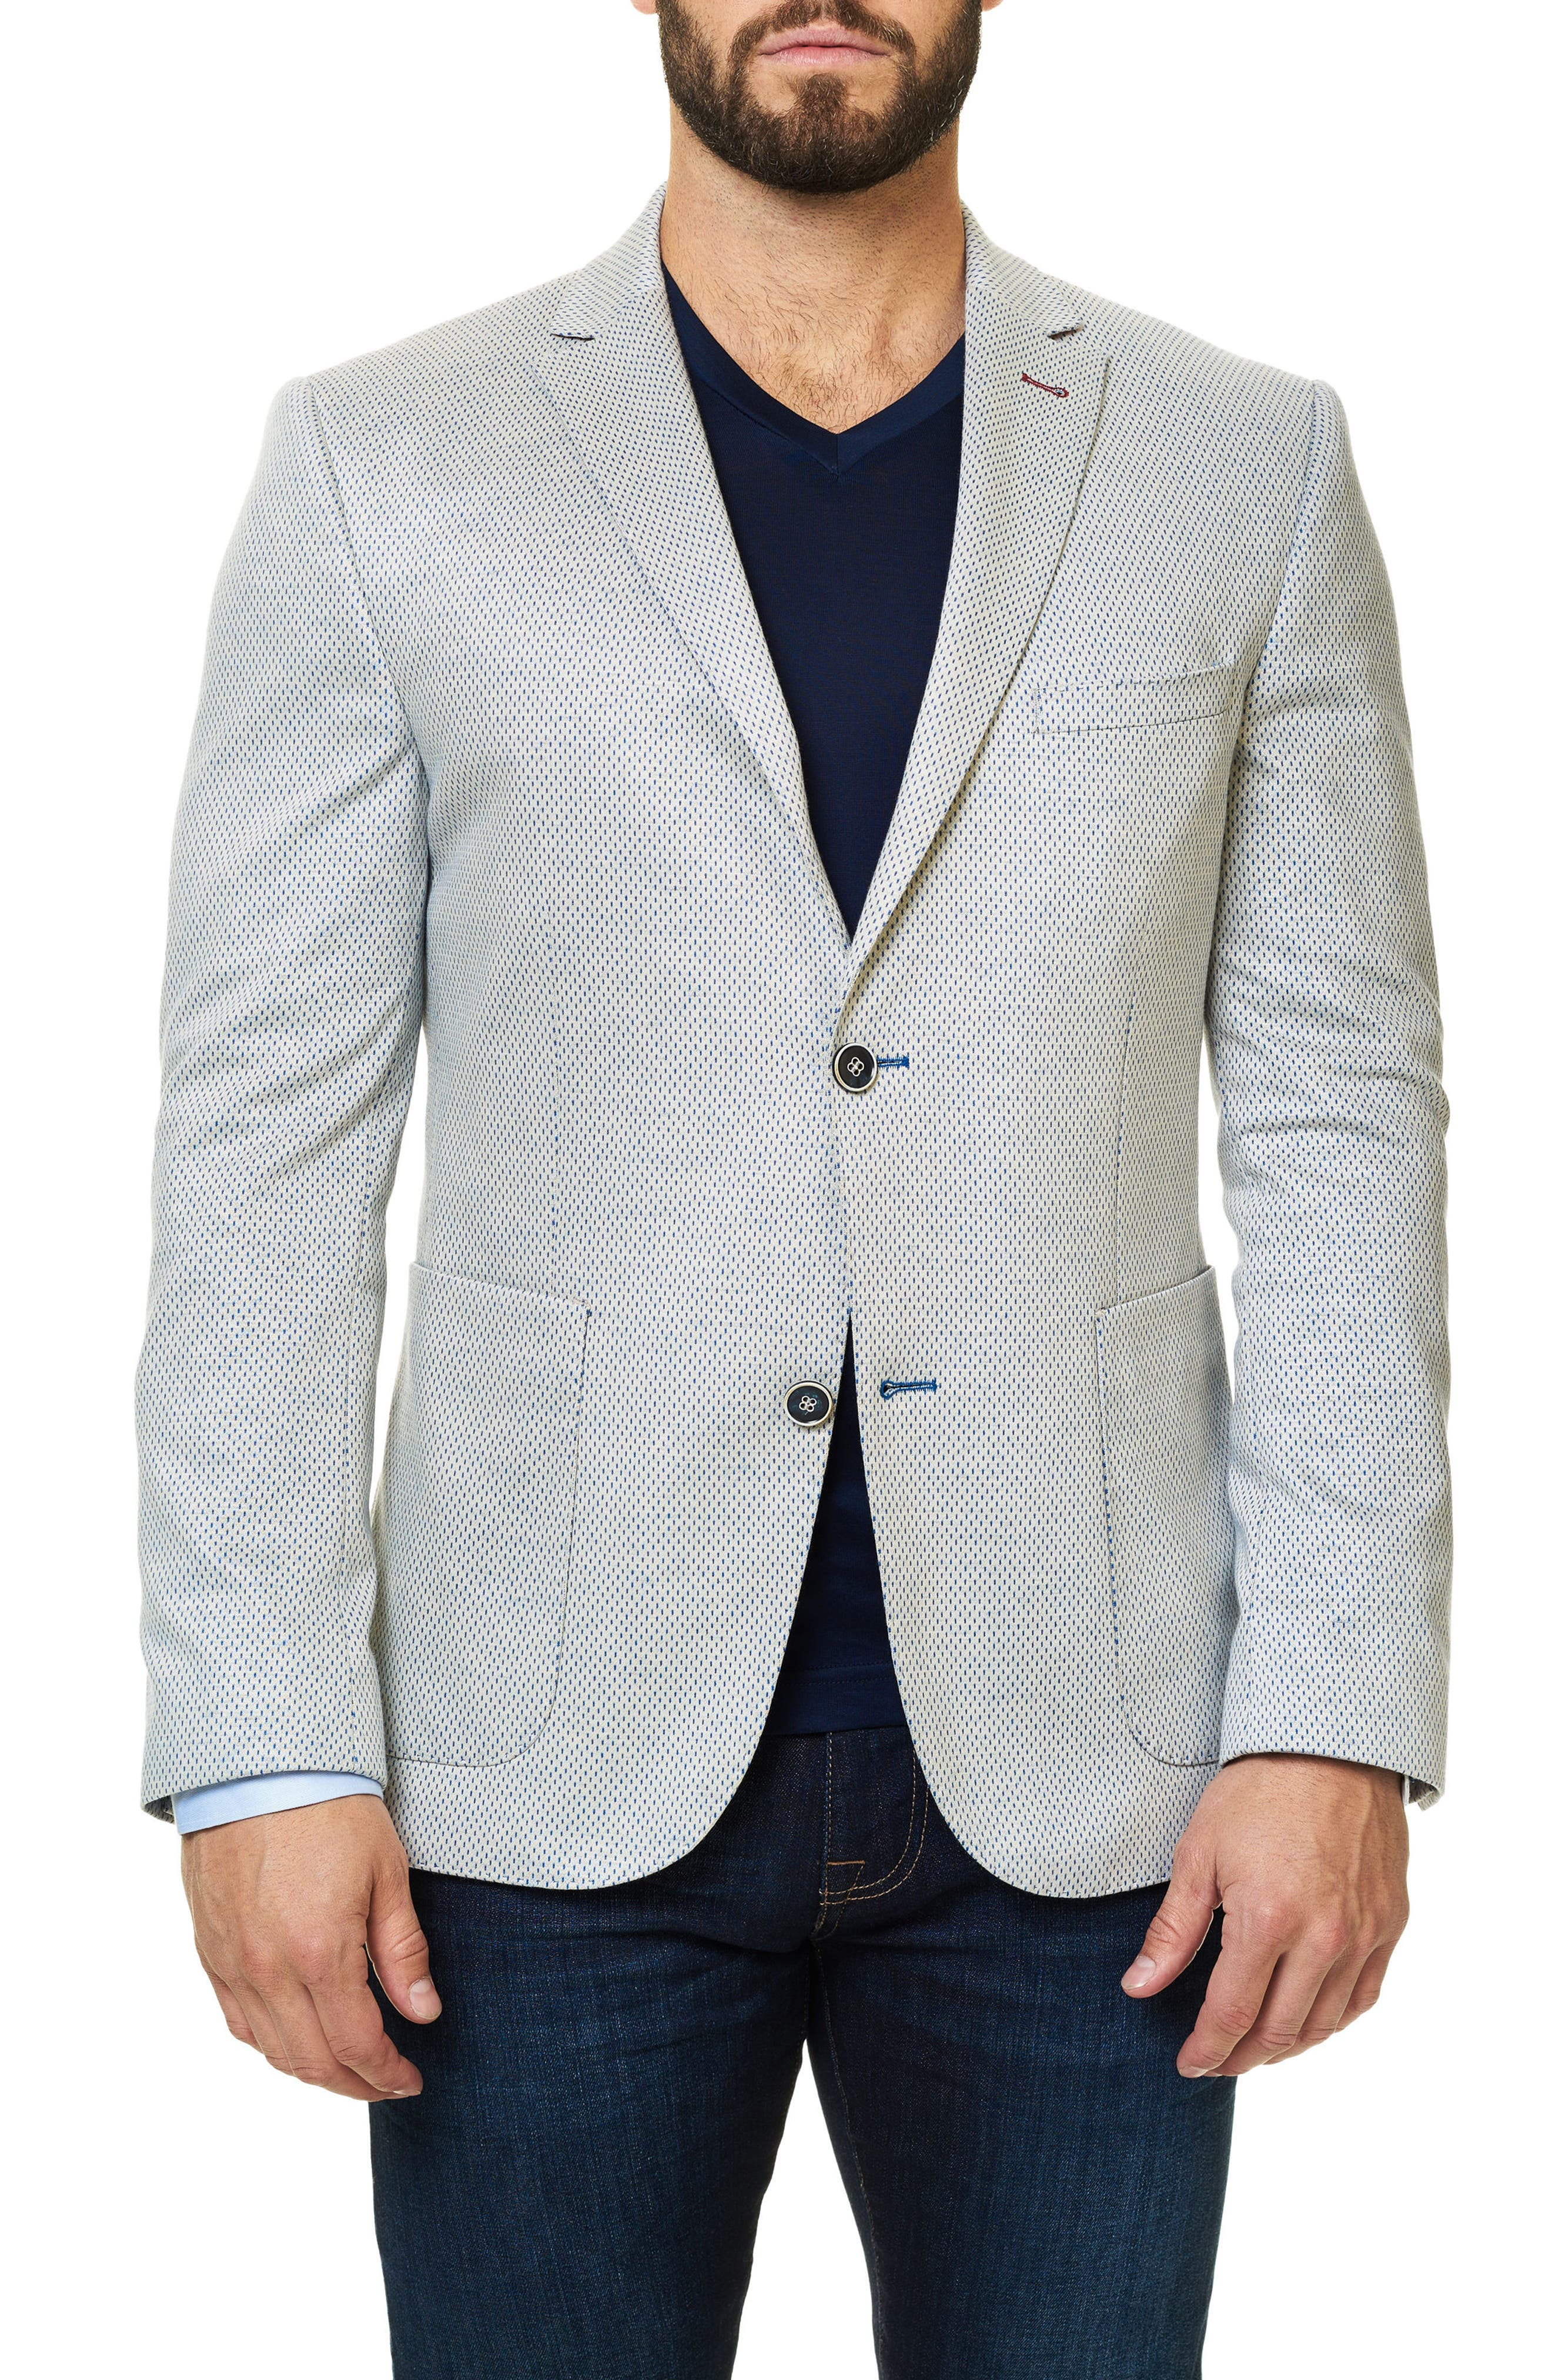 Maceoo Checkmate Dobby Dash Sport Coat